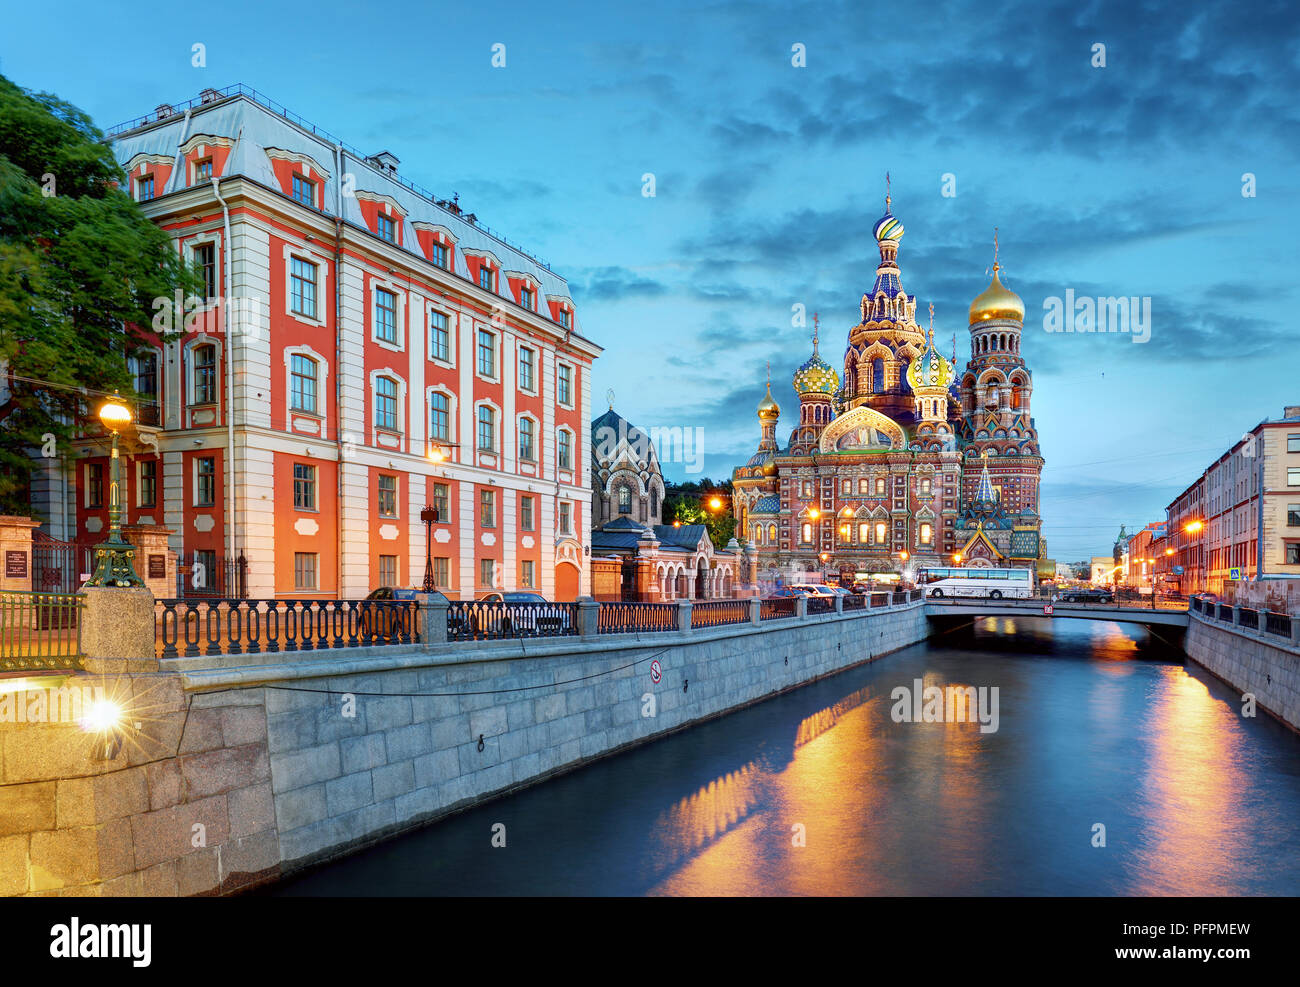 St. Petersburg - Church of the Saviour on Spilled Blood, Russia - Stock Image